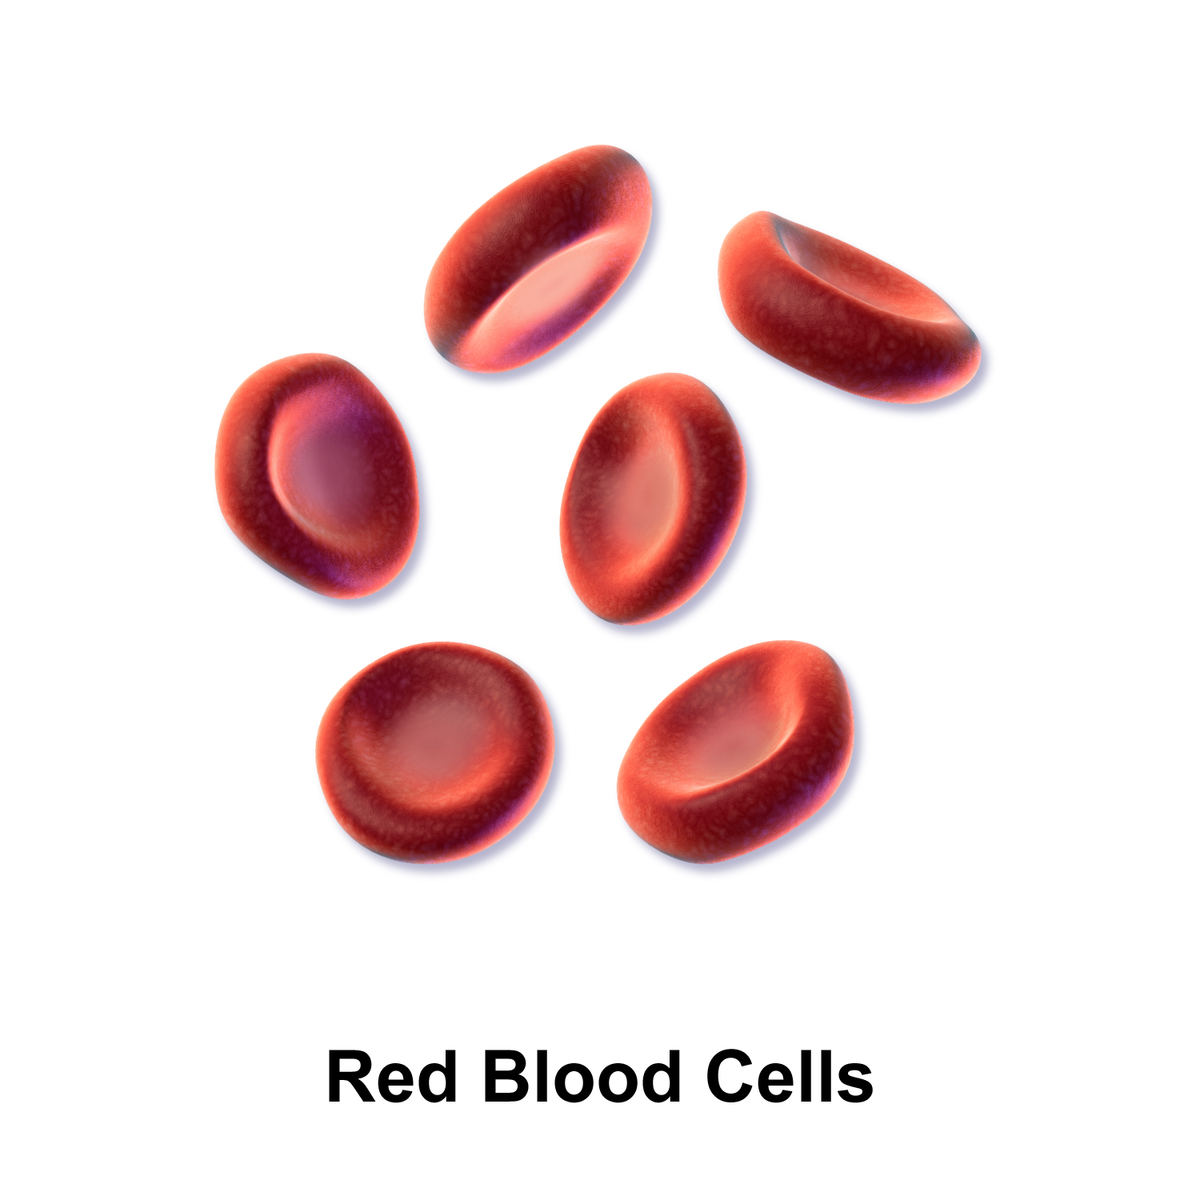 A description of anemia as a disease of the blood characterized by a deficiency in red blood cells